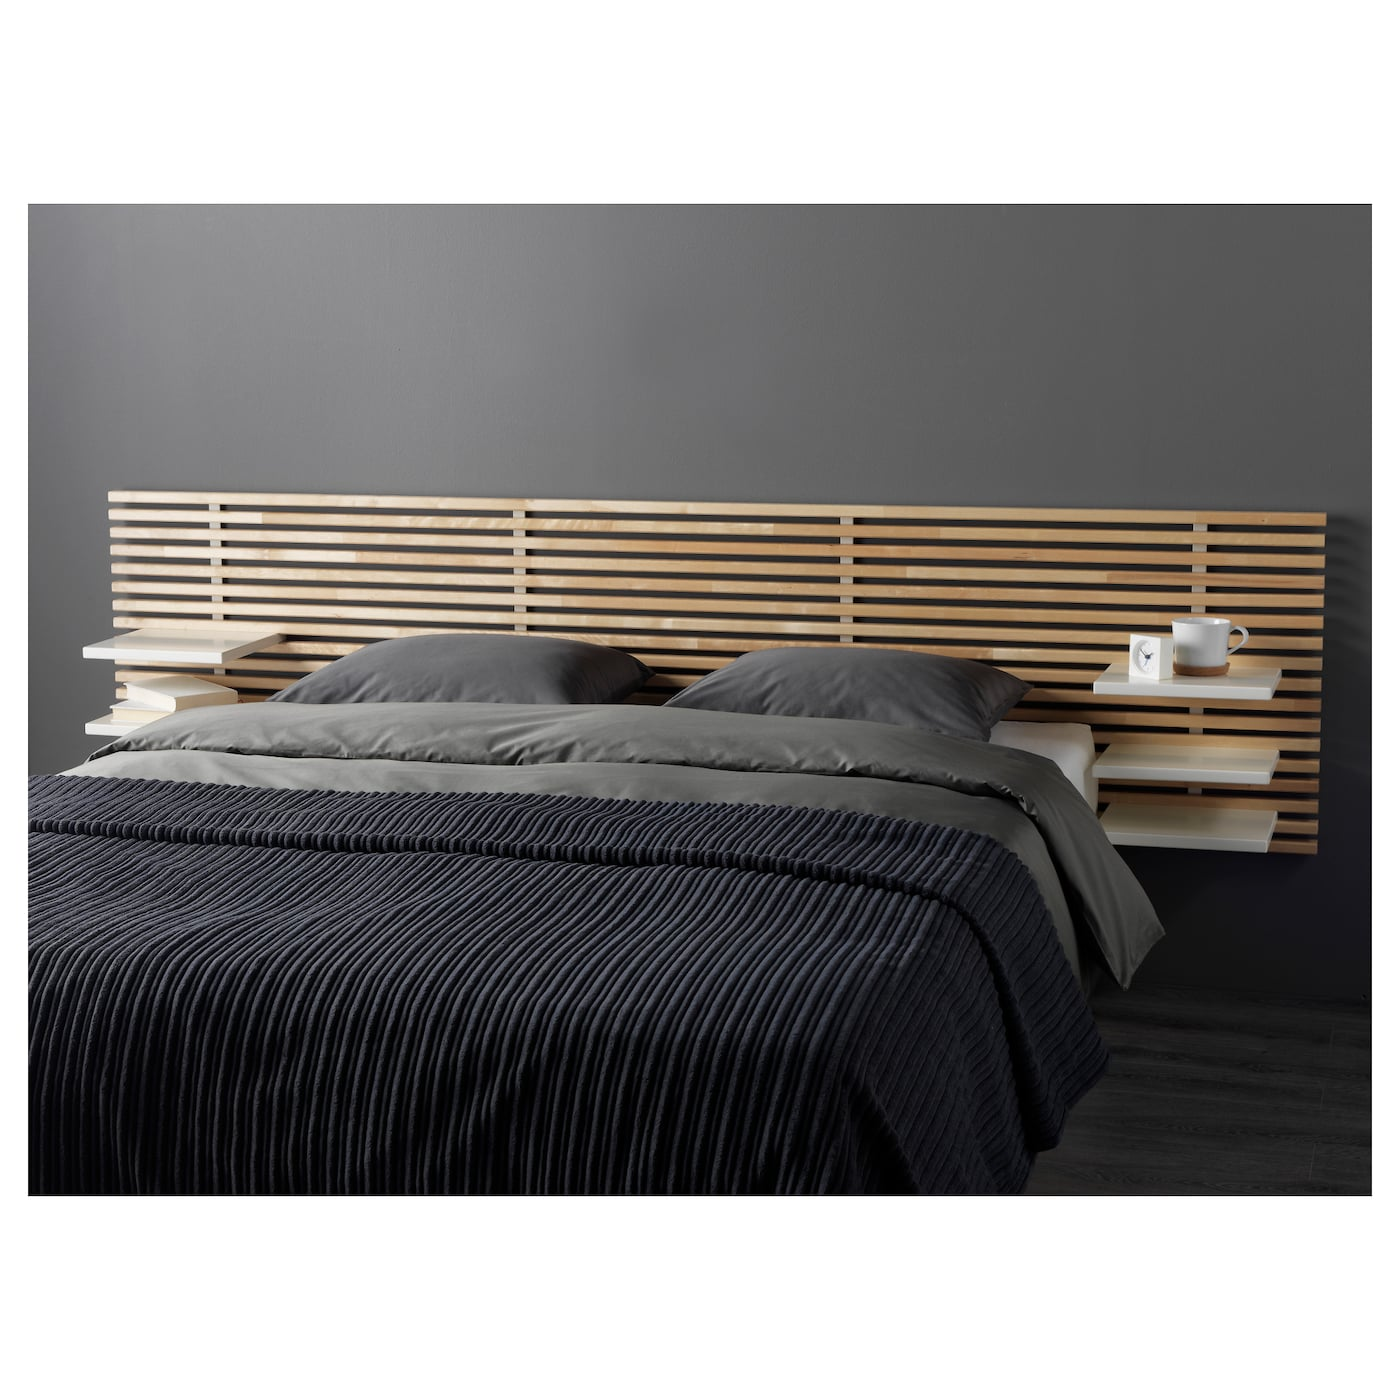 ikea mandal wall mounted headboard. Black Bedroom Furniture Sets. Home Design Ideas